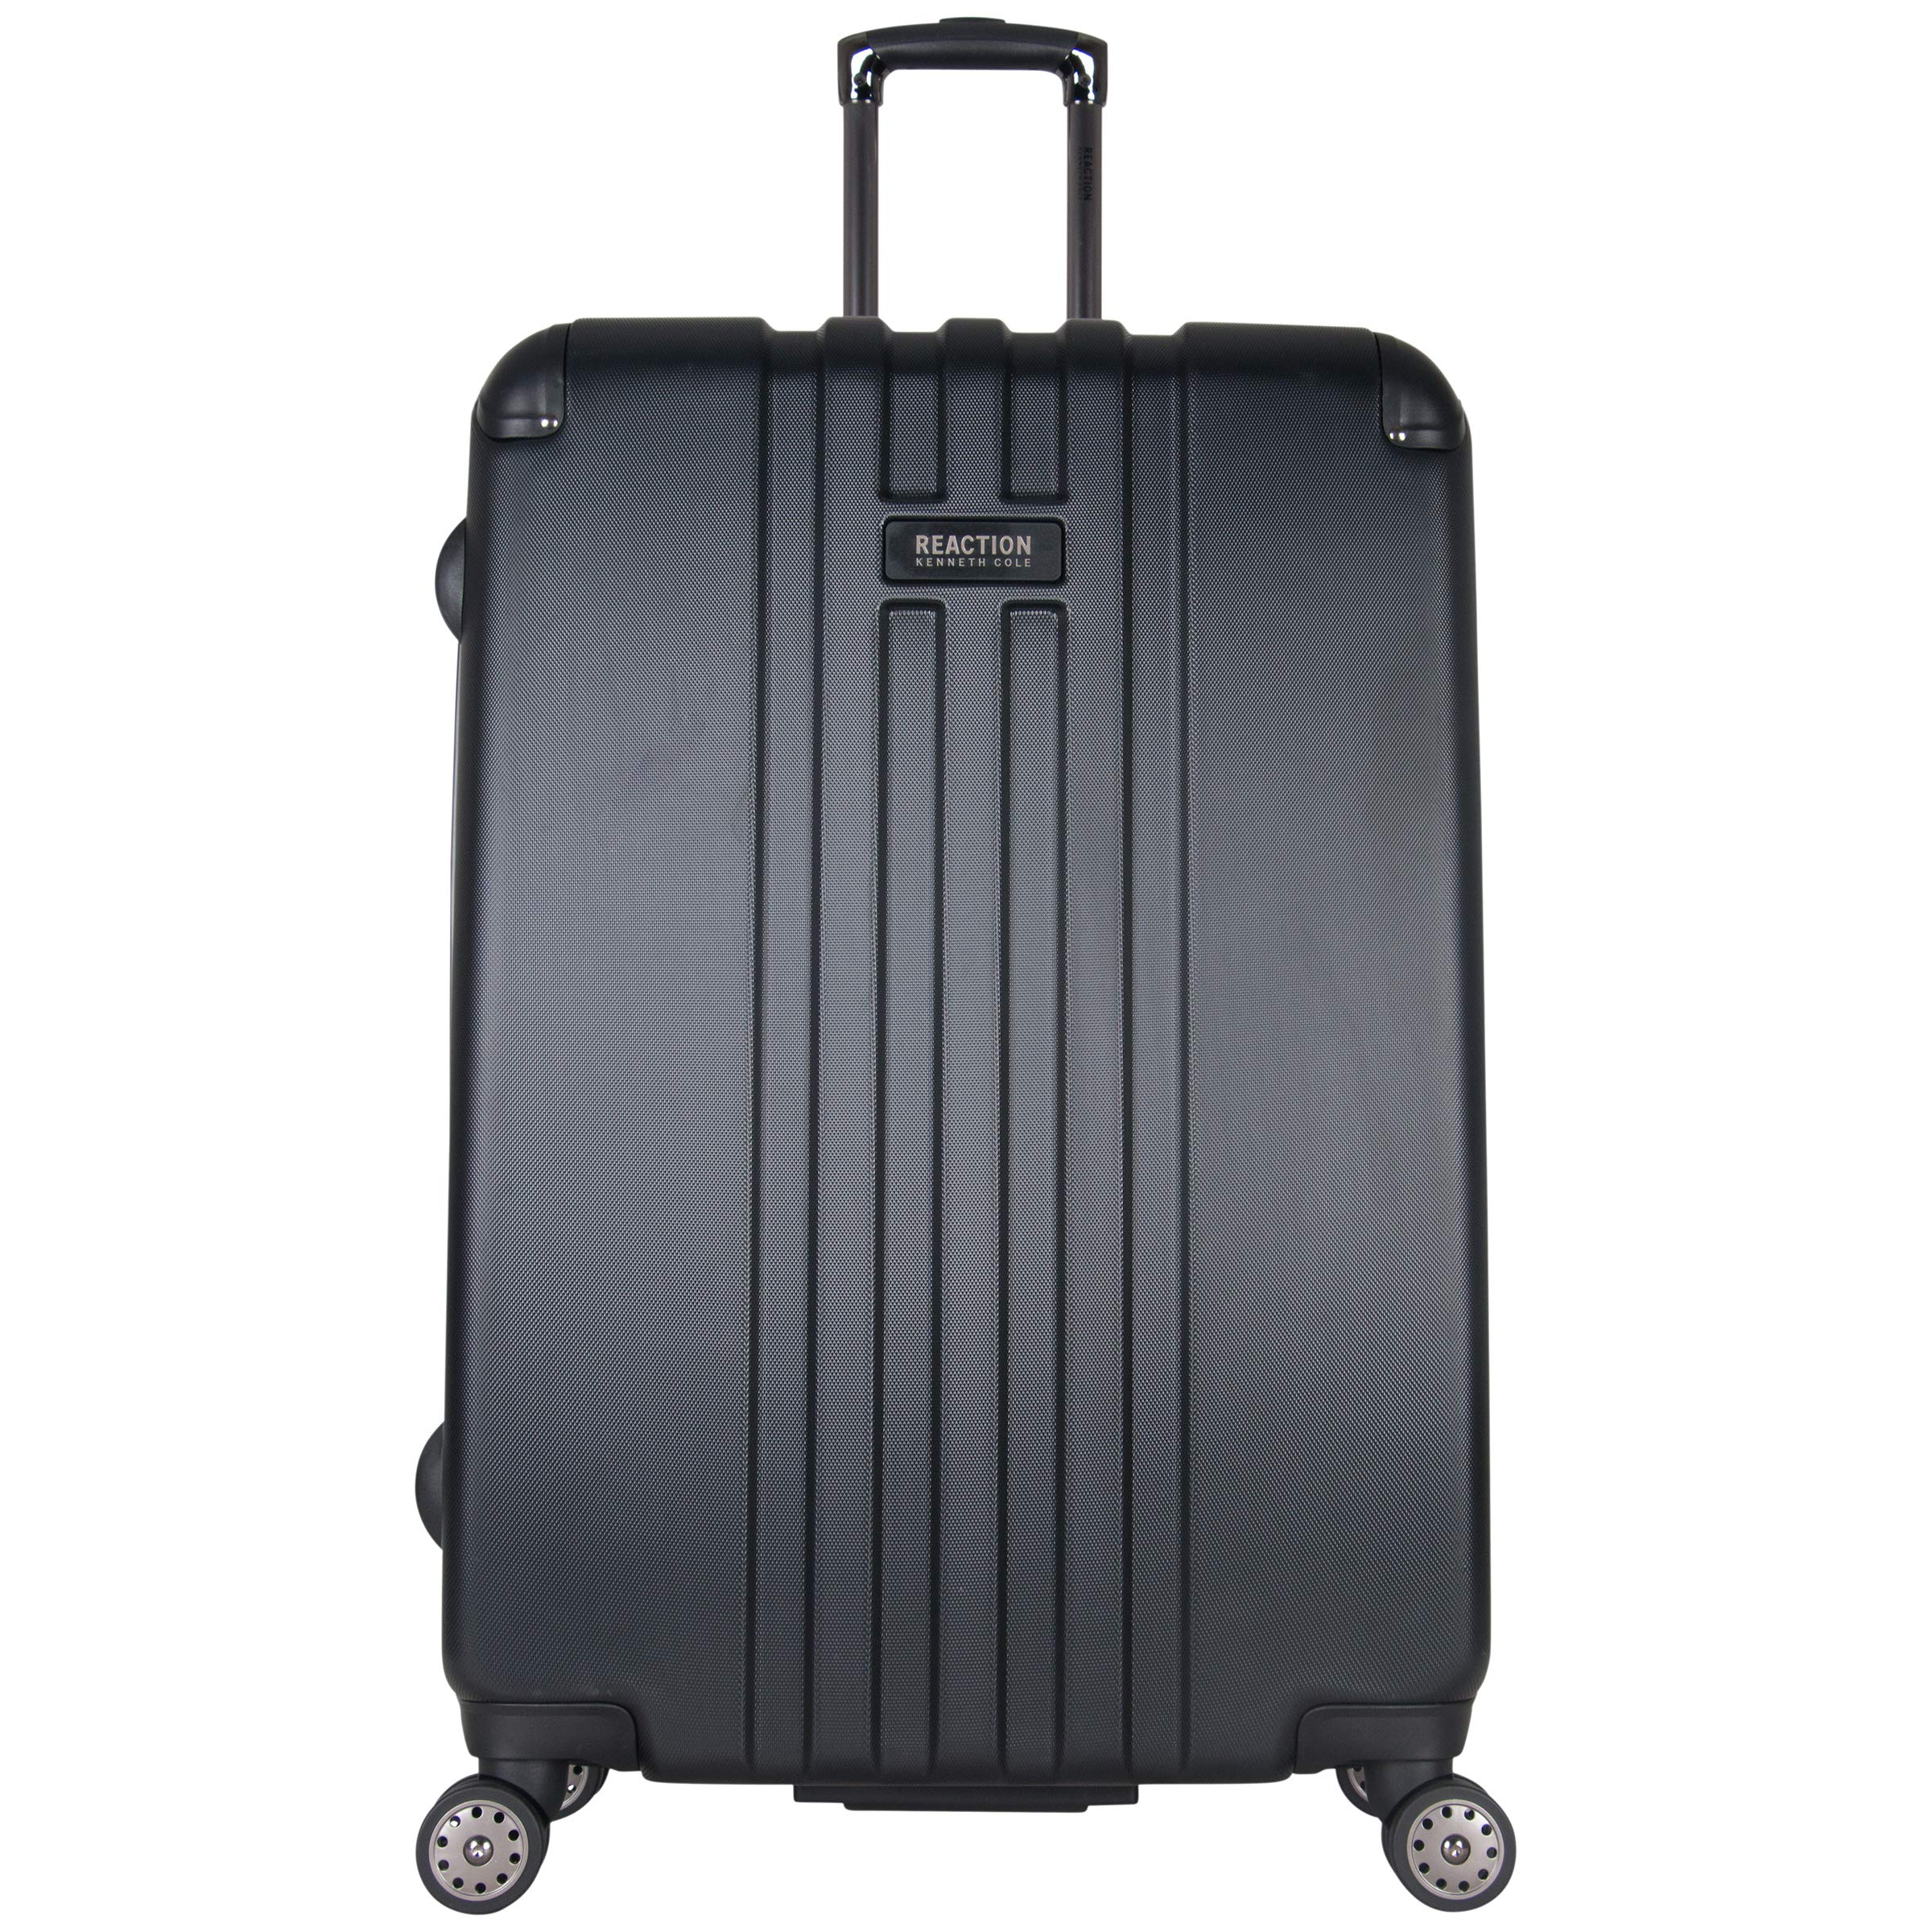 Kenneth Cole Reaction Reverb 29'' Hardside Expandable 8-Wheel Spinner Checked Luggage, Black